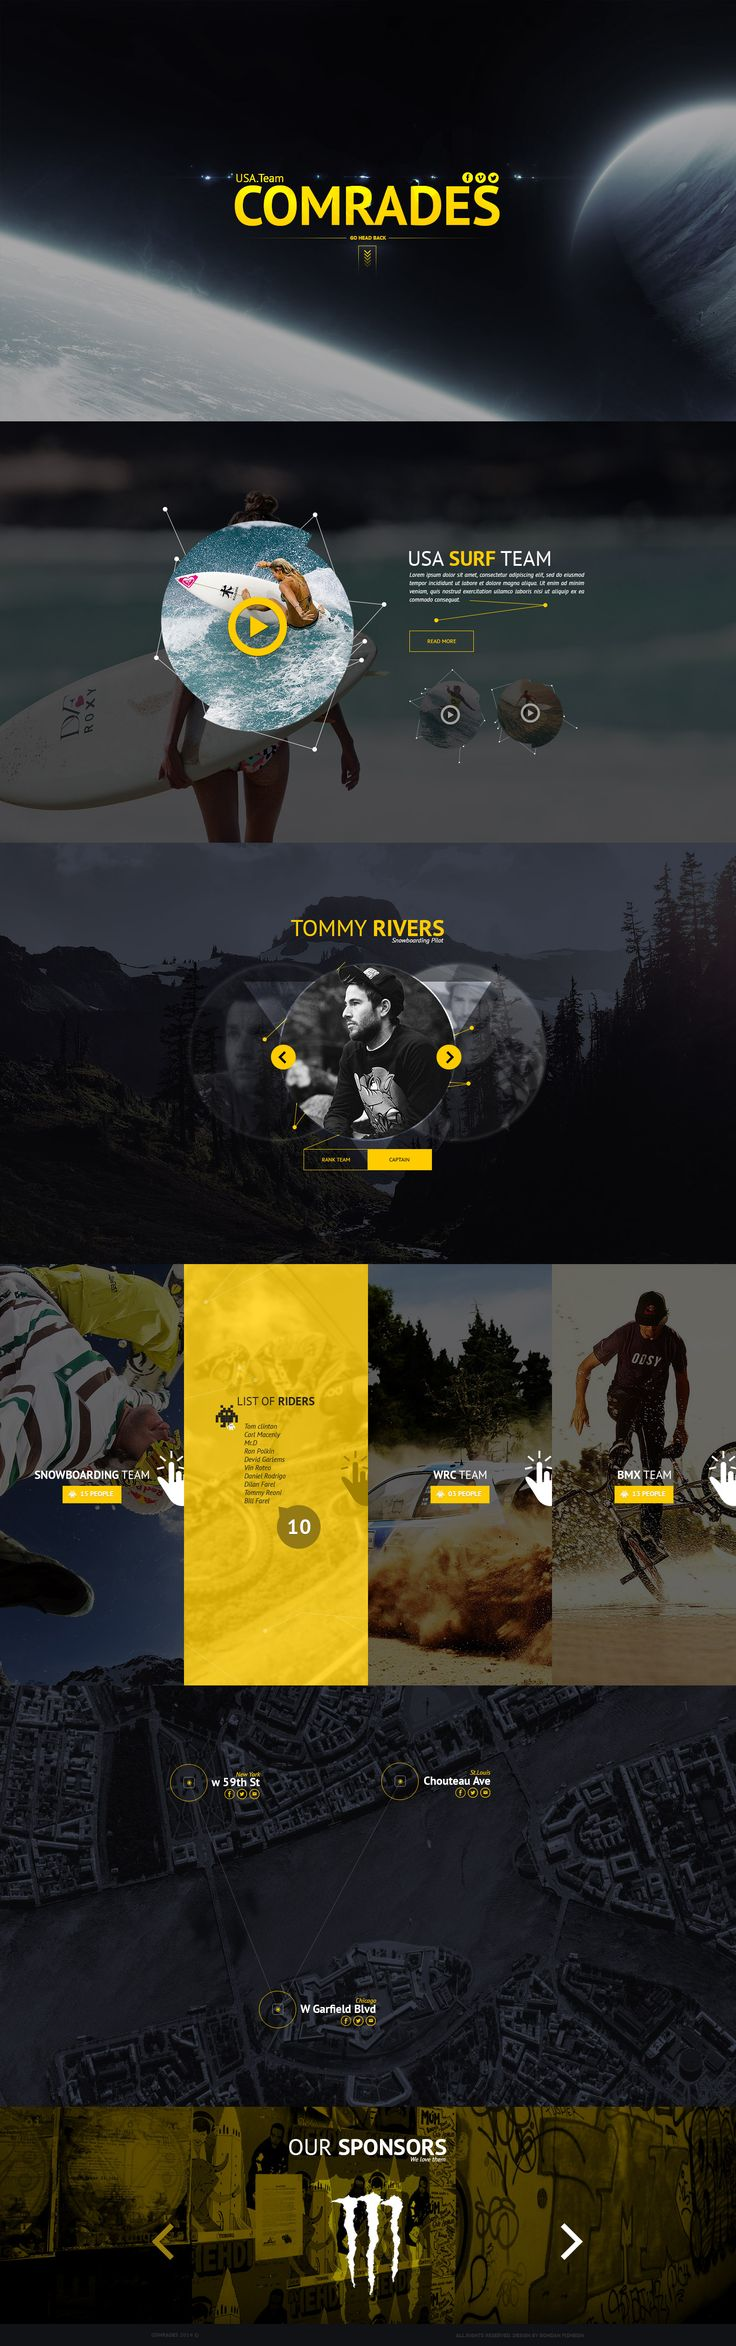 Landing Page - USA. Team Comrades by Shizoy.deviantart.com on @DeviantArt